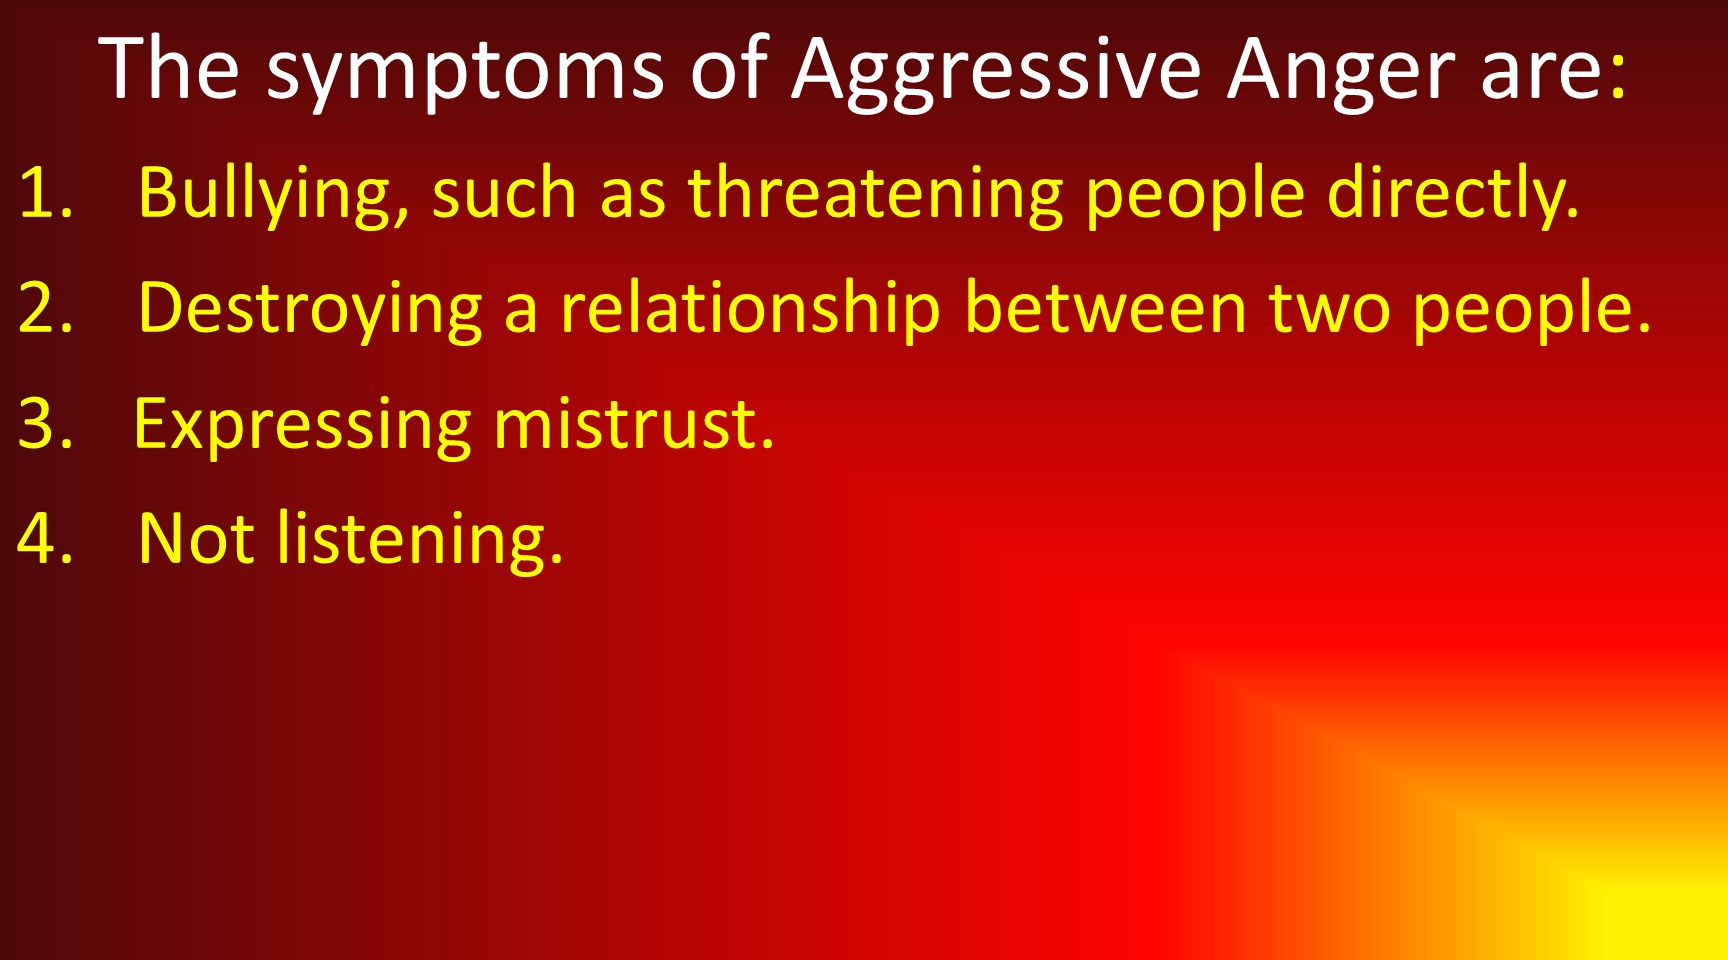 The symptoms of Aggressive Anger are: 1.Bullying, such as threatening people directly.